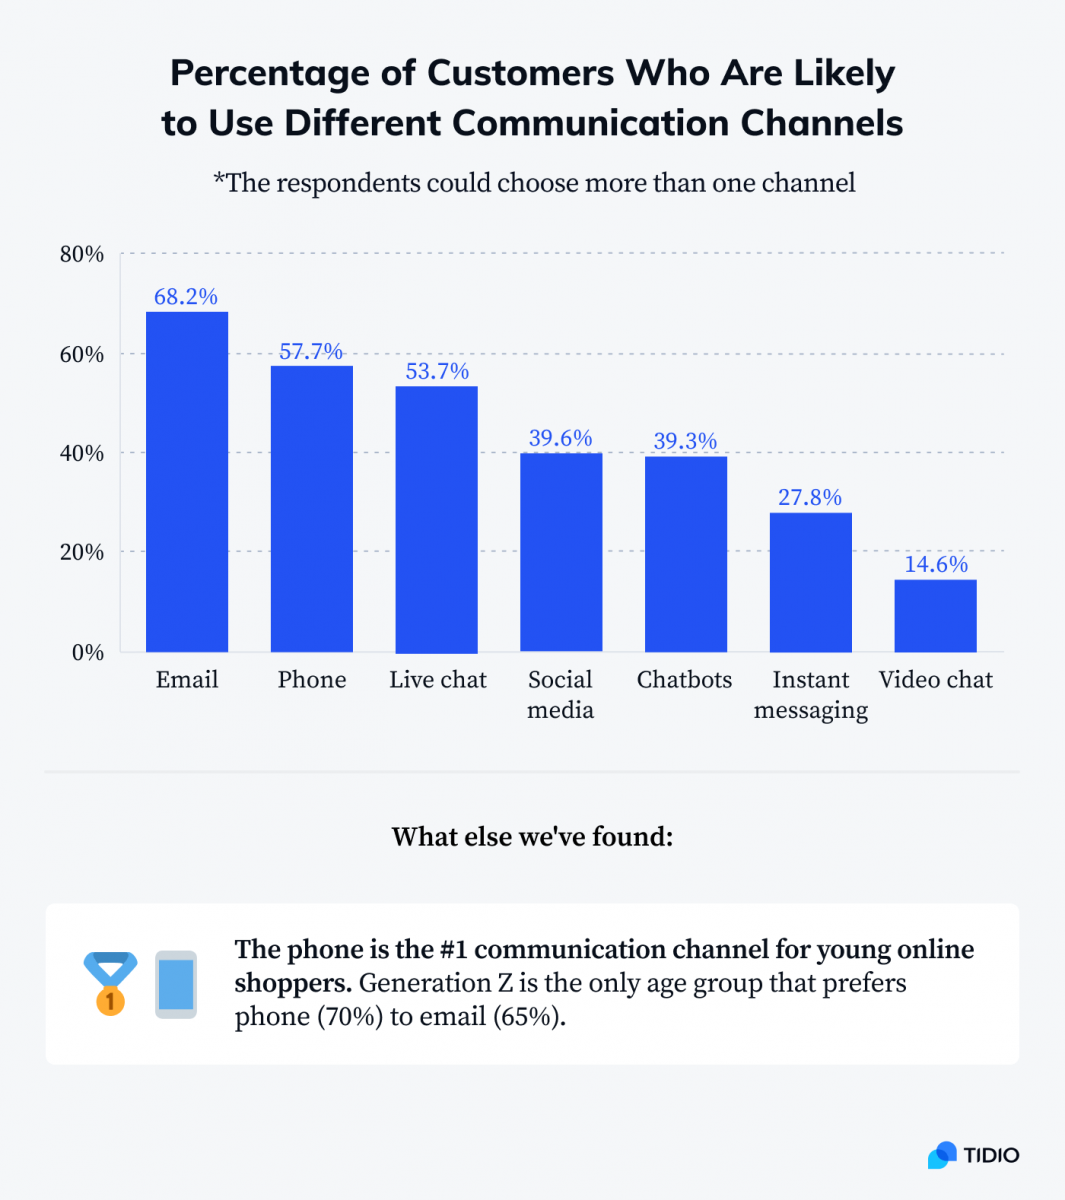 Percentage of customers who are likely to use different communication channels